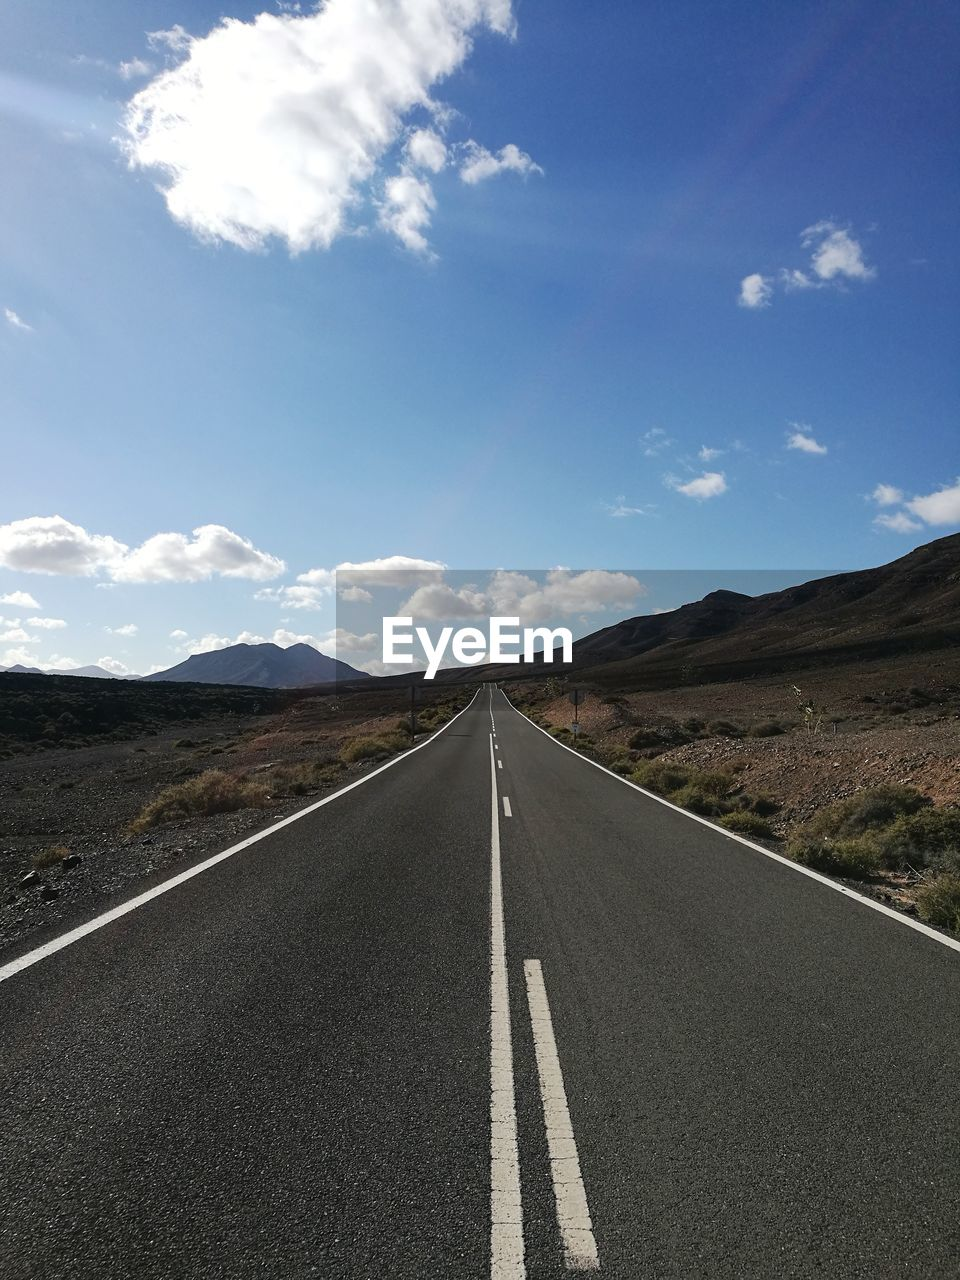 road, sky, direction, transportation, cloud - sky, symbol, road marking, marking, sign, the way forward, diminishing perspective, landscape, environment, mountain, nature, non-urban scene, scenics - nature, vanishing point, tranquility, beauty in nature, no people, mountain range, outdoors, dividing line